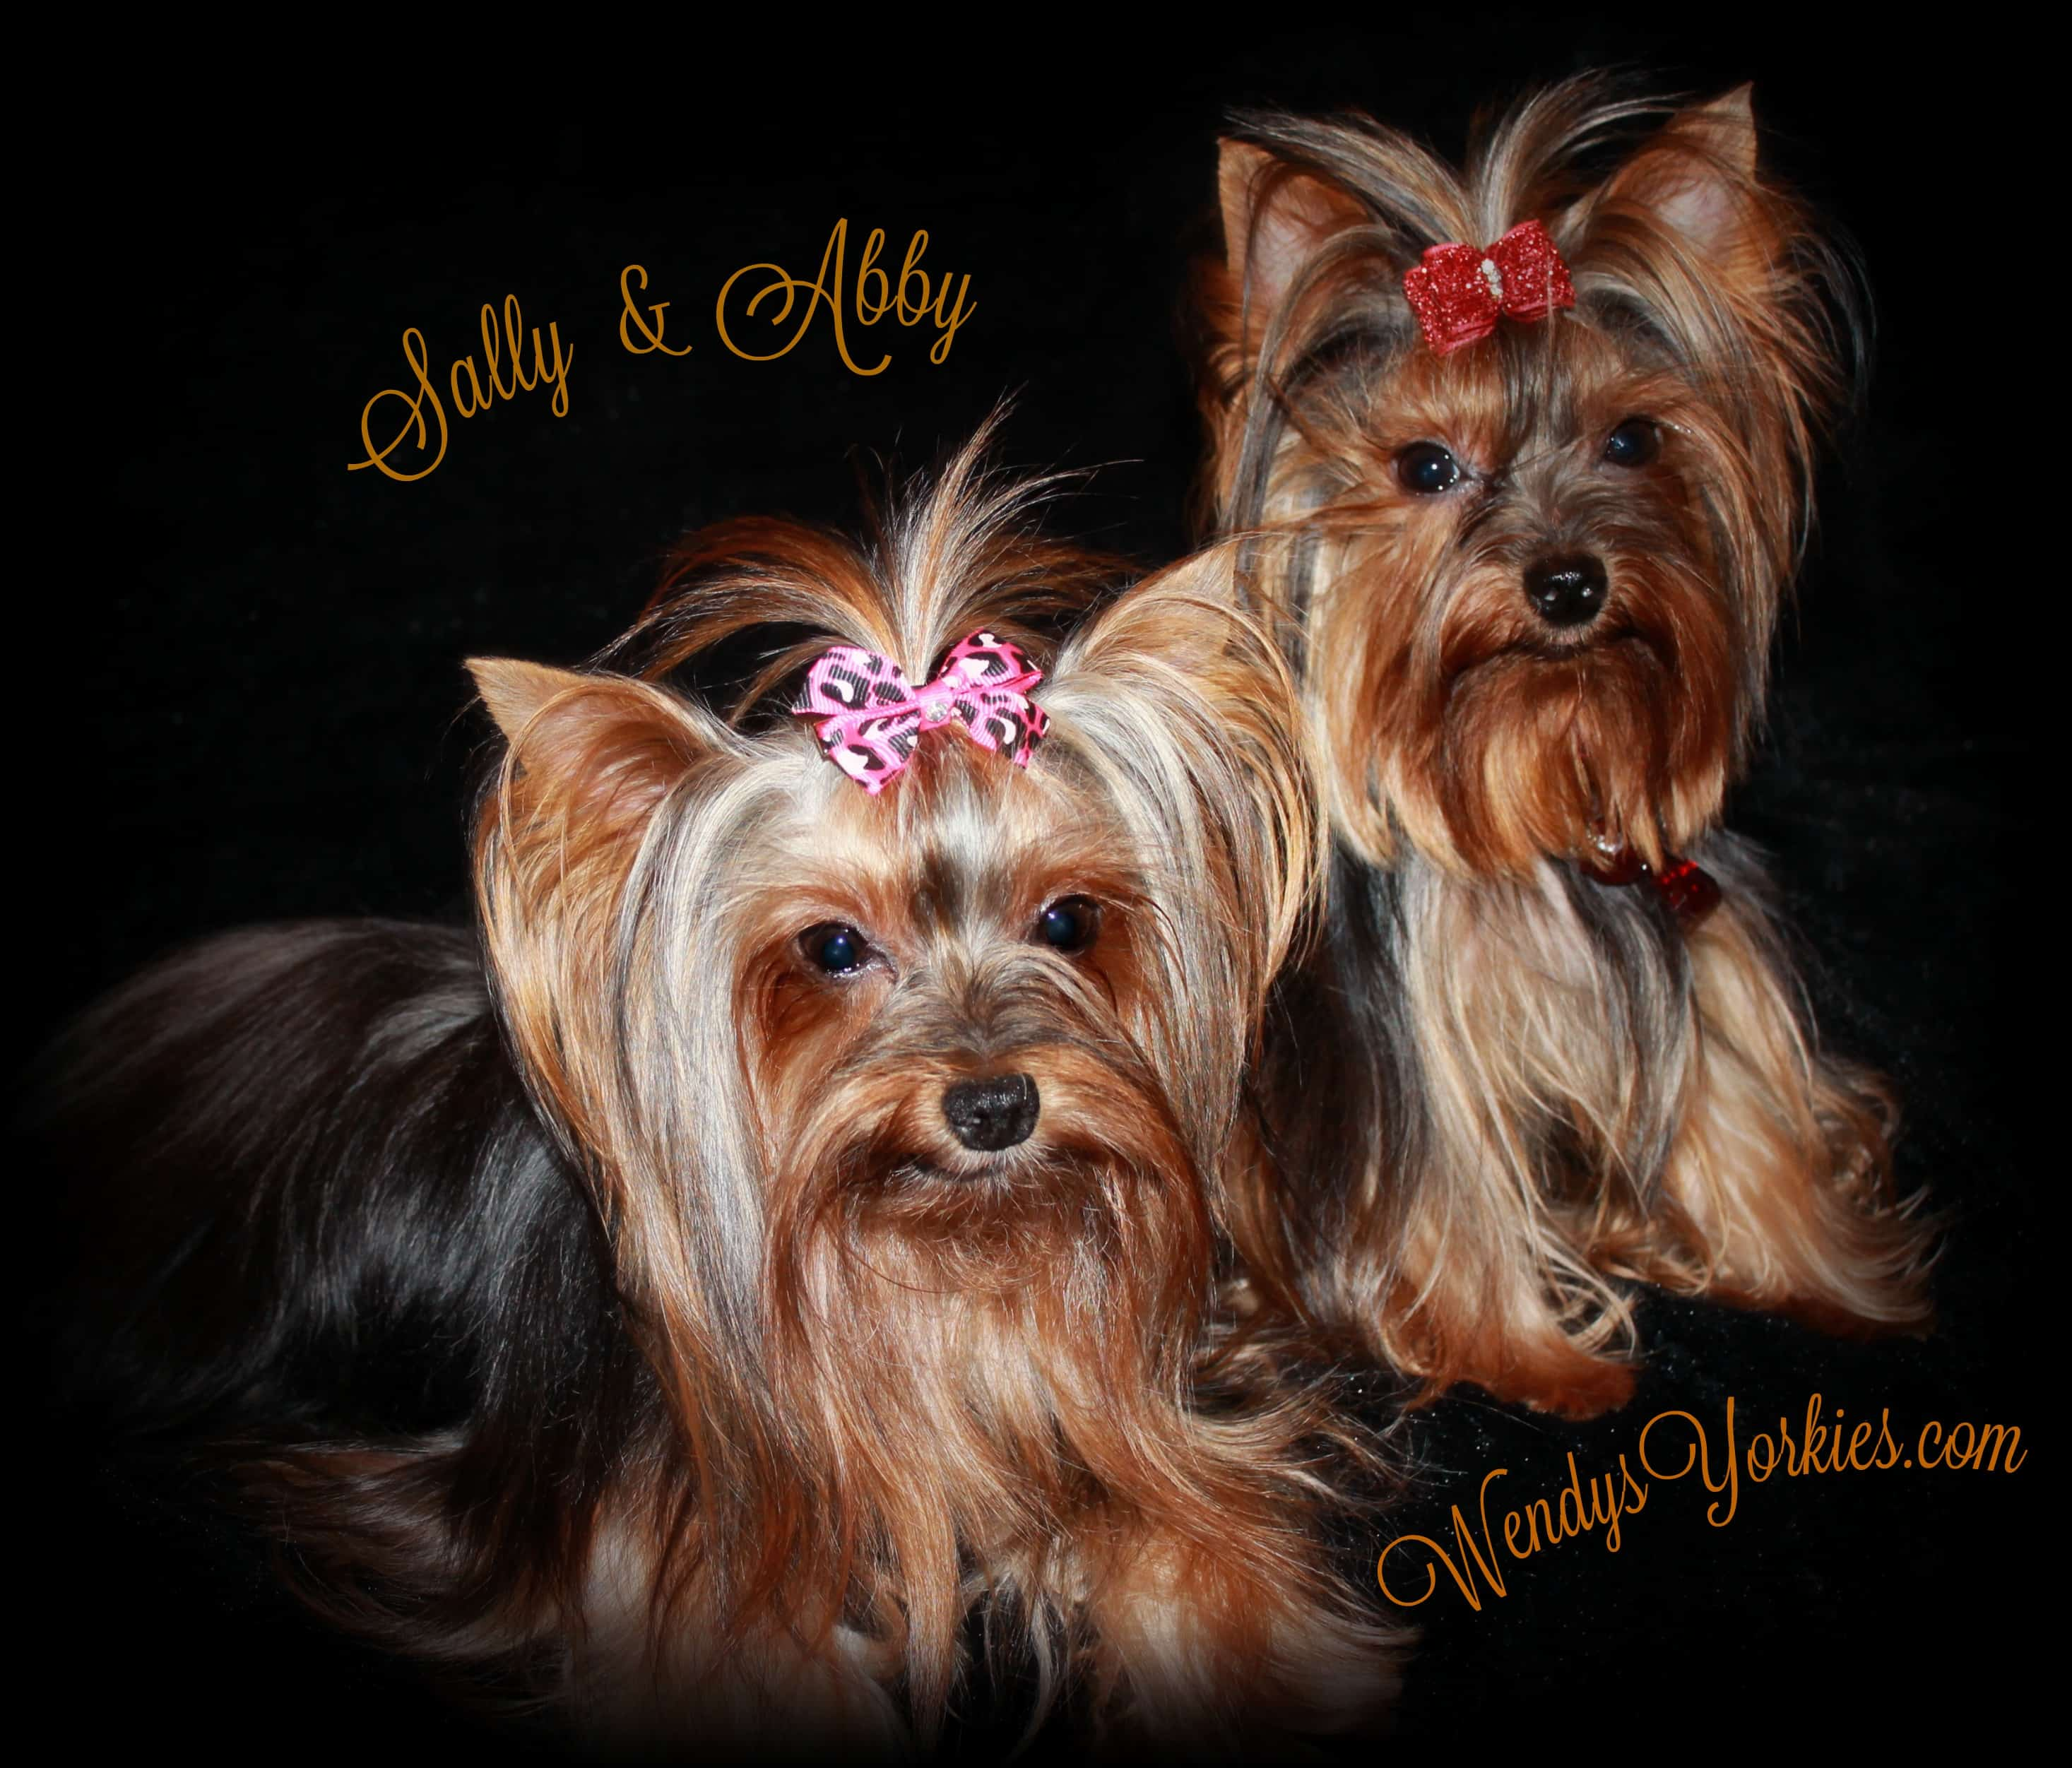 Sally and Abby , WendysYorkies.com, Yorkshire Terrier Breeder in Texas